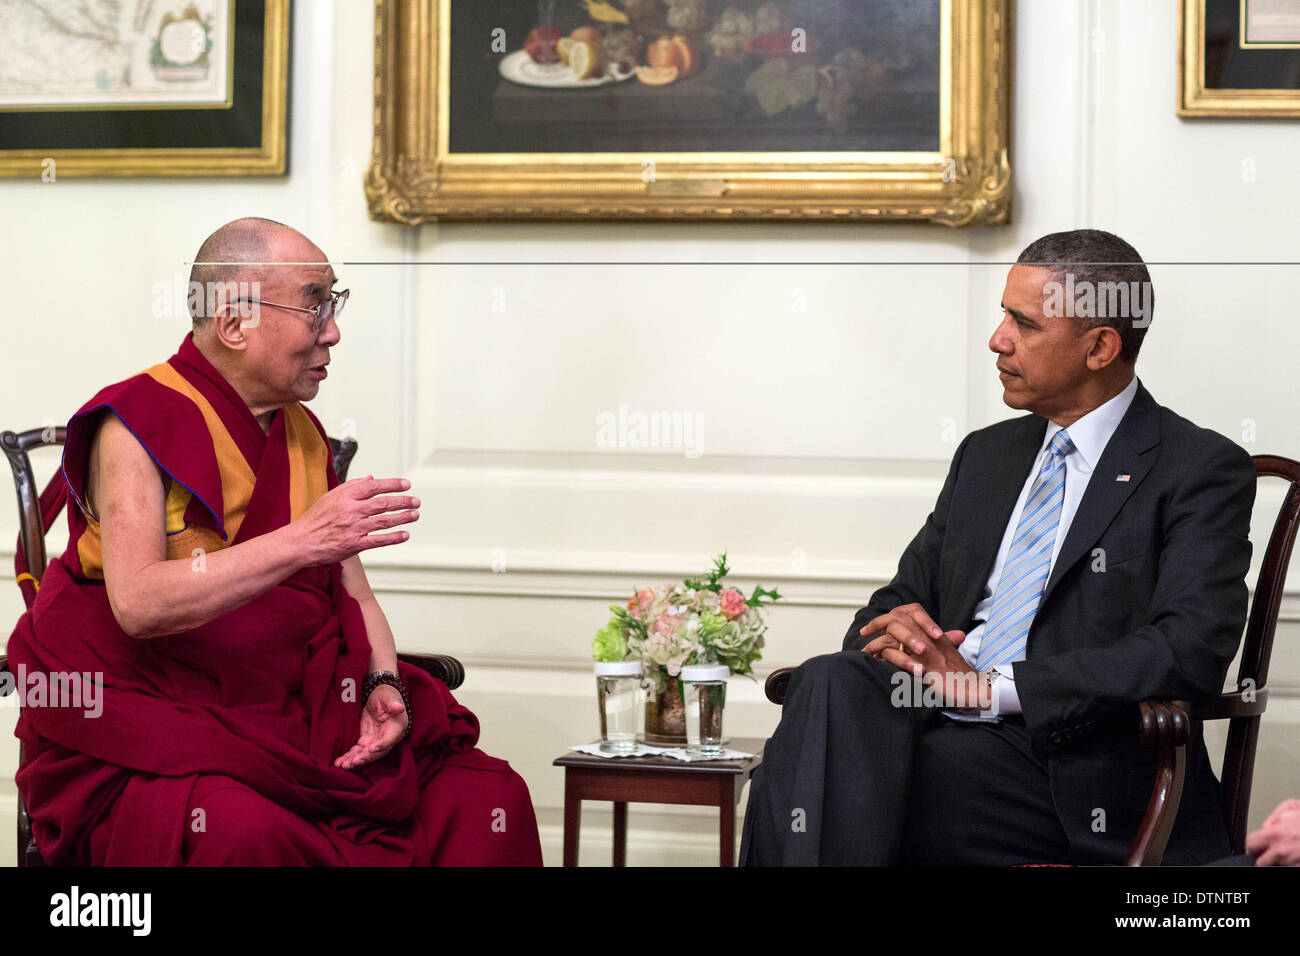 US President Barack Obama meets with the Dalai Lama in the Map Room of the White House February 21, 2014 in Washington, DC. - Stock Image